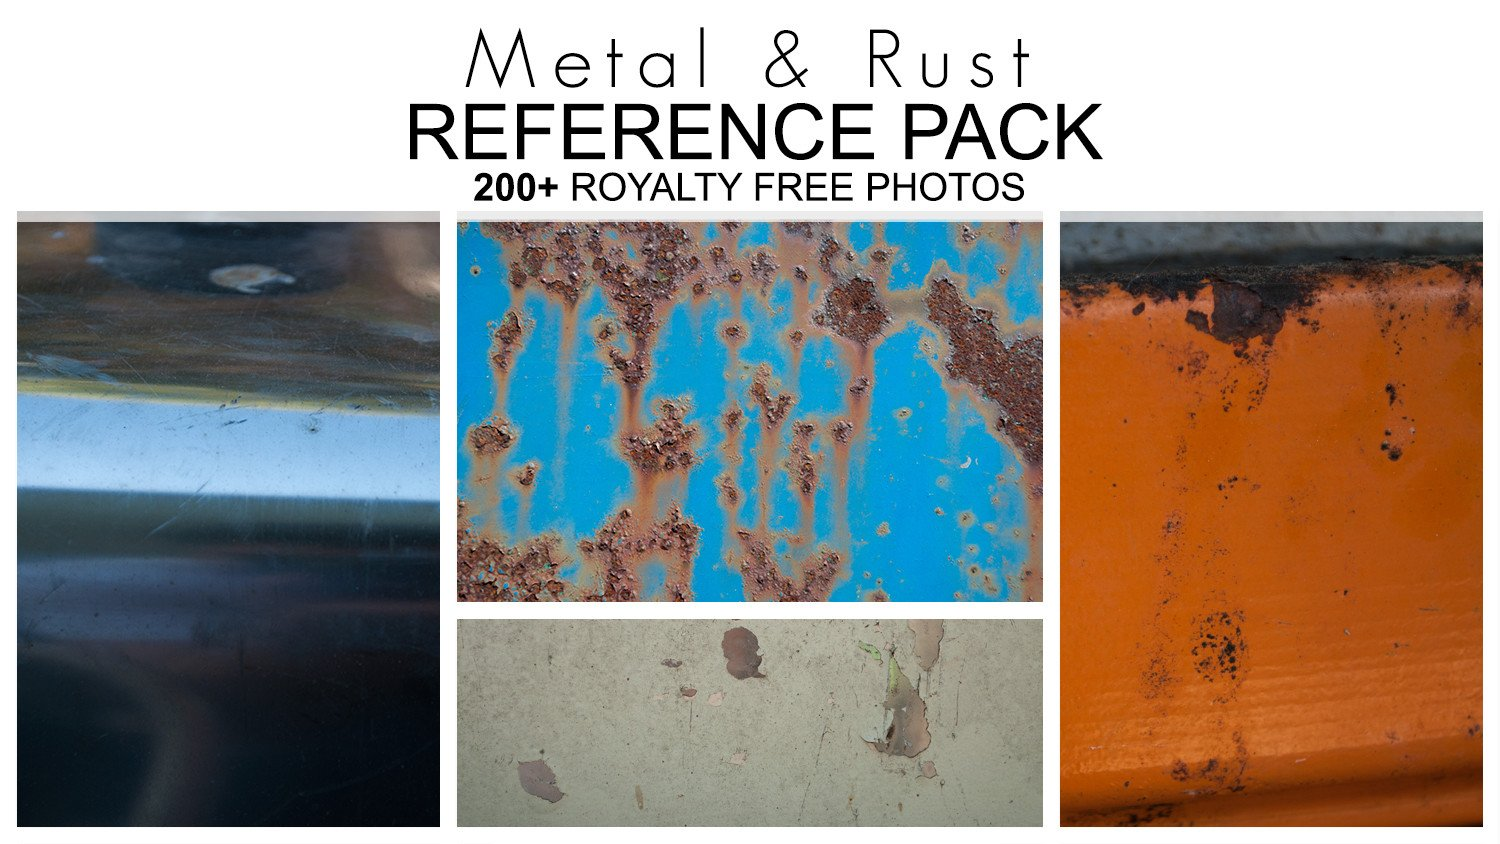 Tom Lopez - Reference Pack - Metal & Rust - 200+ Royalty